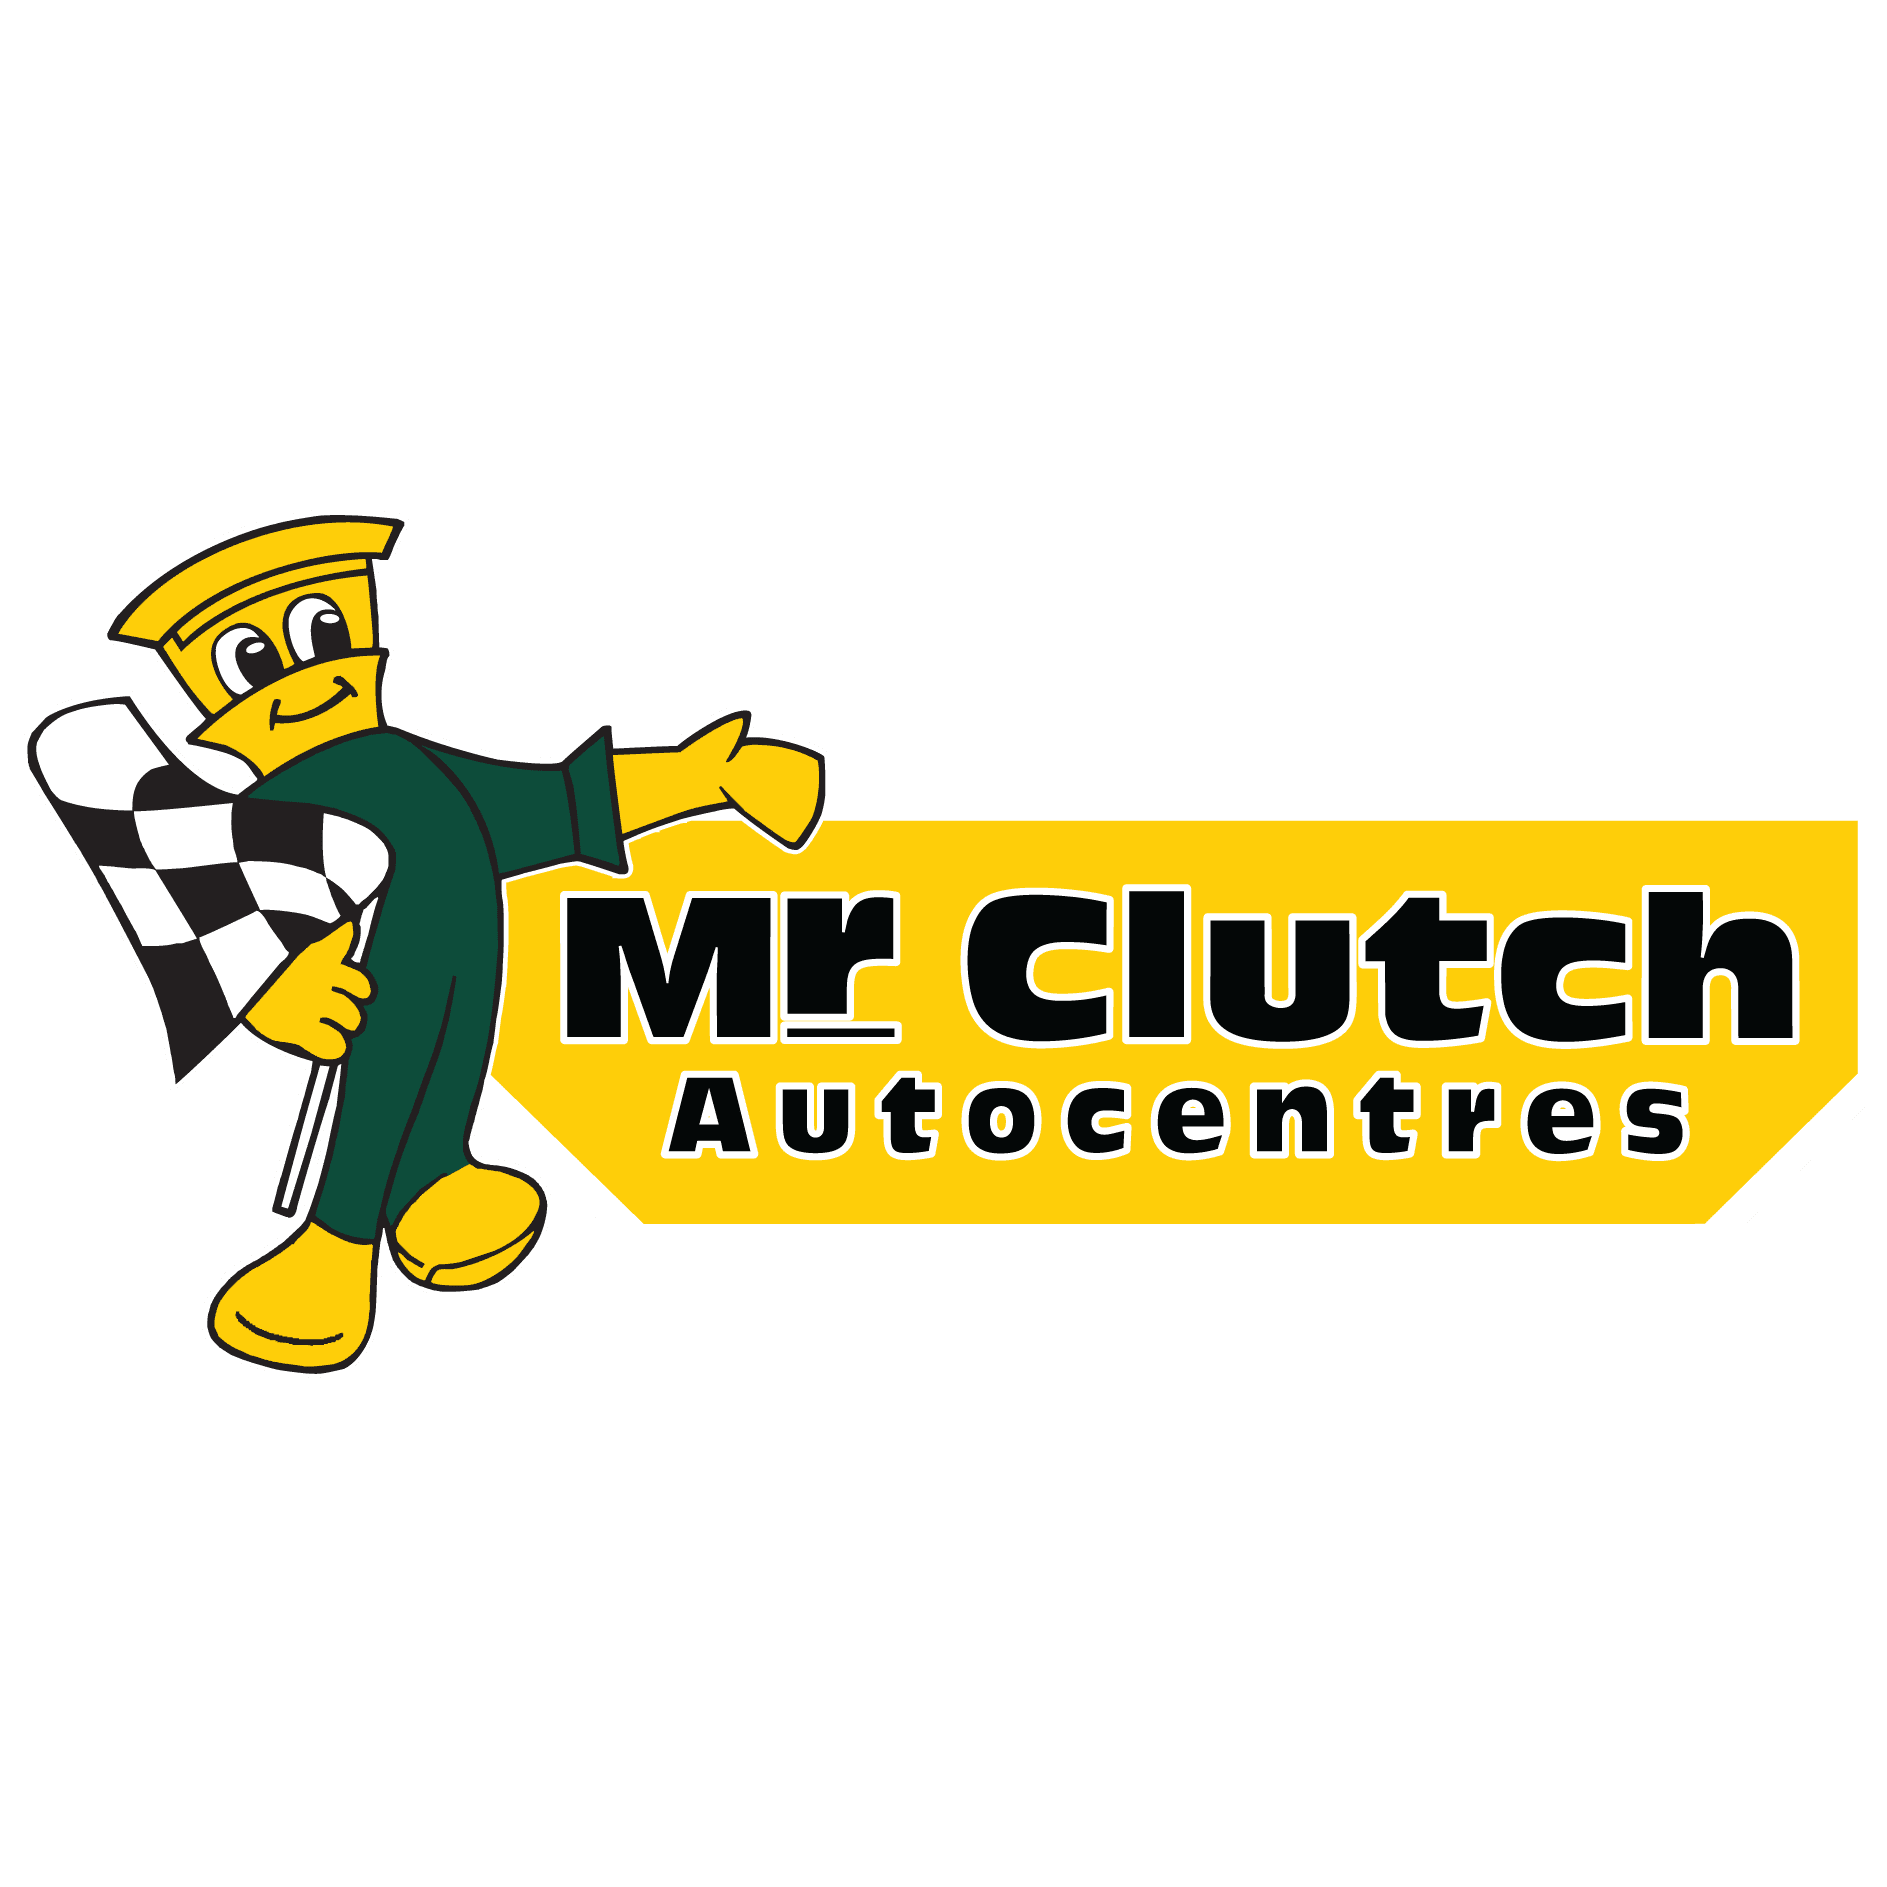 Mr Clutch Autocentres - Dartford, London DA1 4AL - 01322 526075 | ShowMeLocal.com